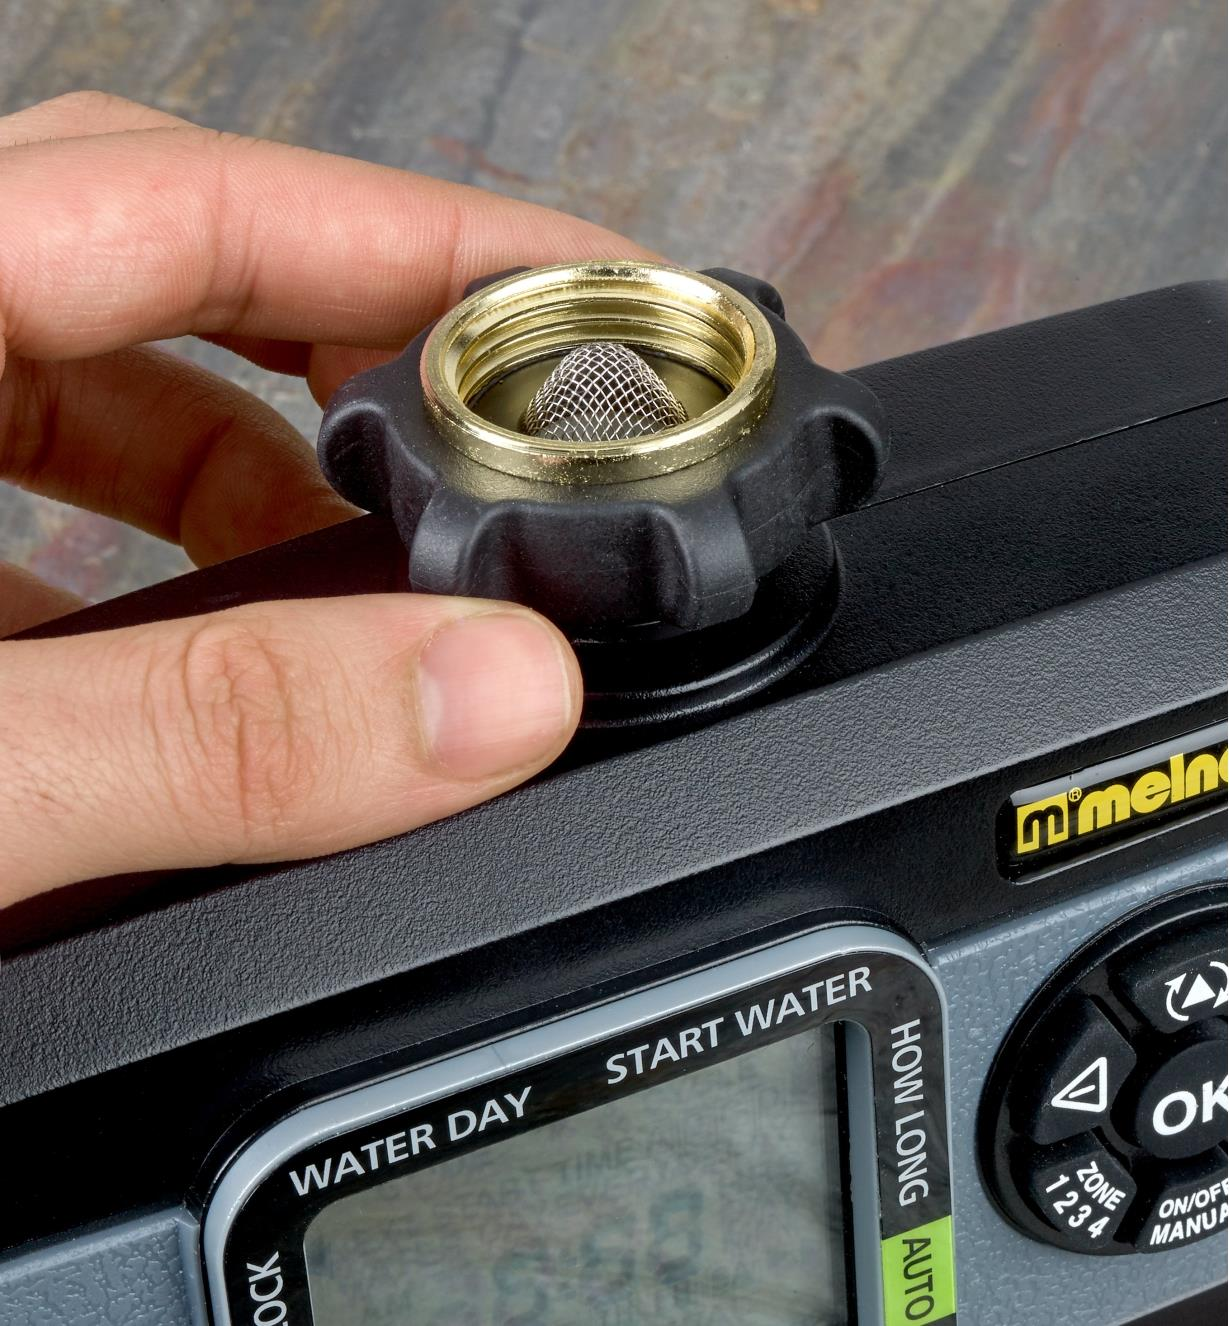 Close-up of electronic water timer faucet connector with filter and ridges for grip